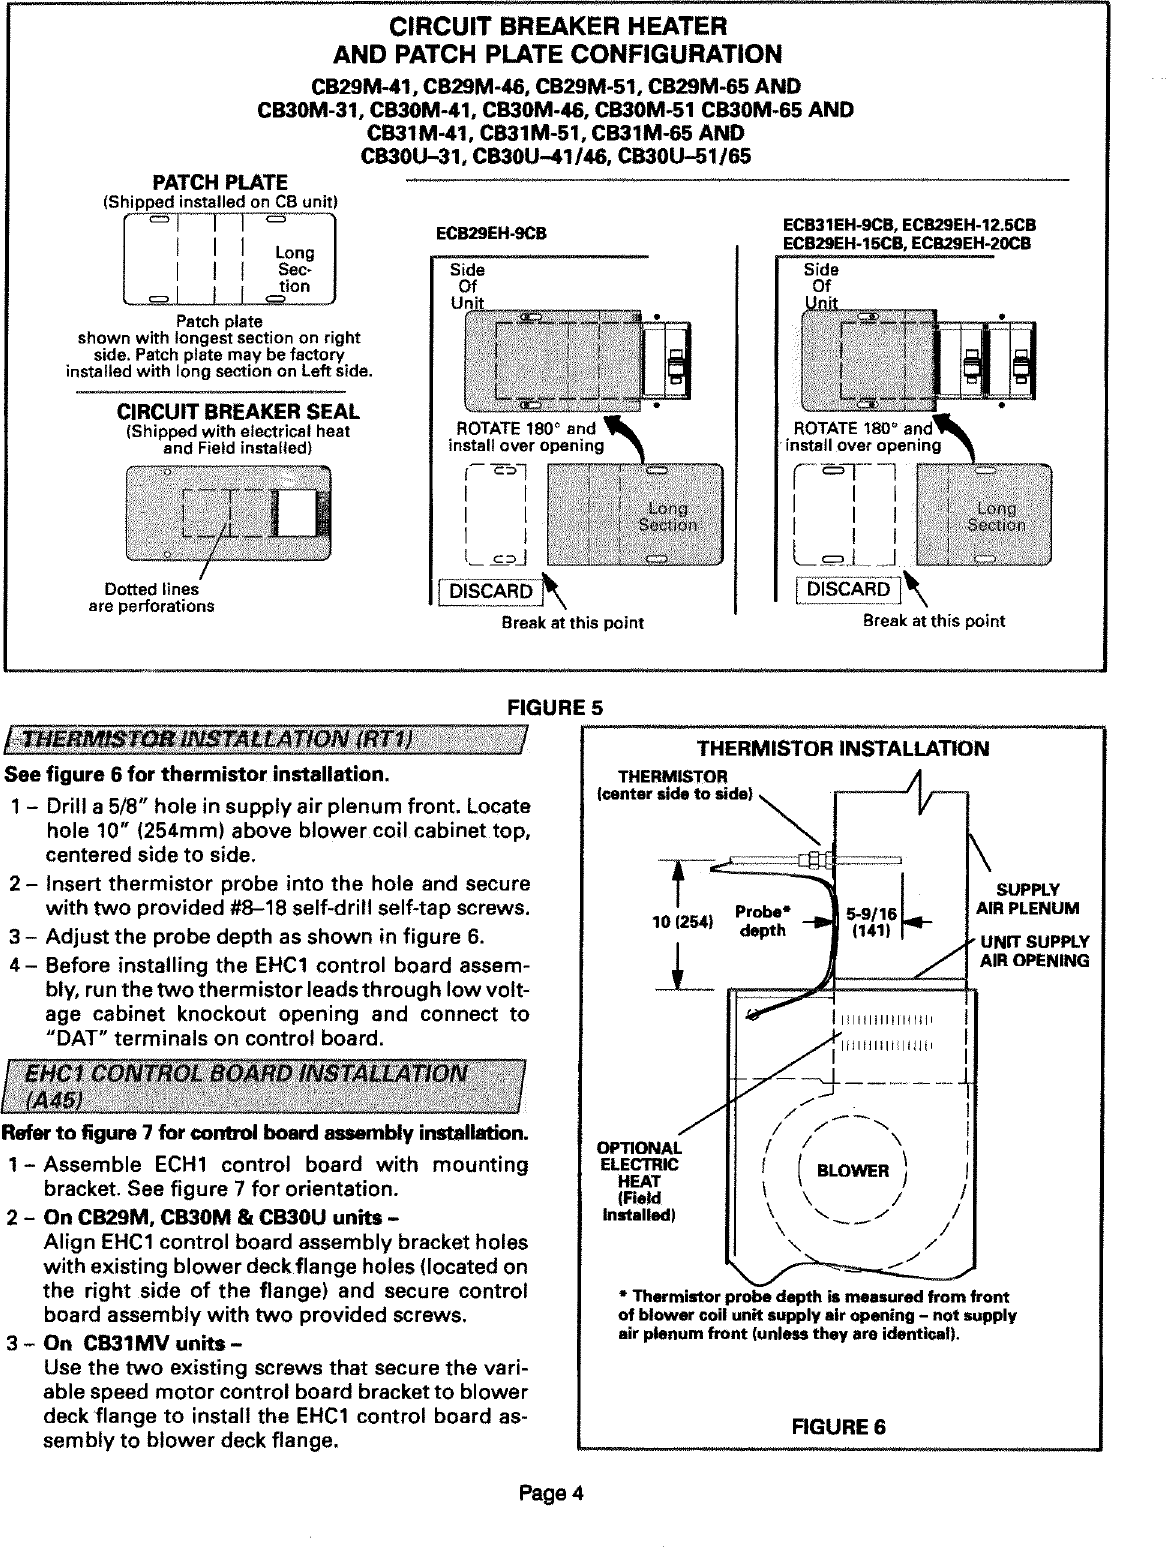 Lennox Air Handler Auxiliary Heater Kit Manual L0805584 10 Kw Electric Furnace Wiring Diagram Page 4 Of 12